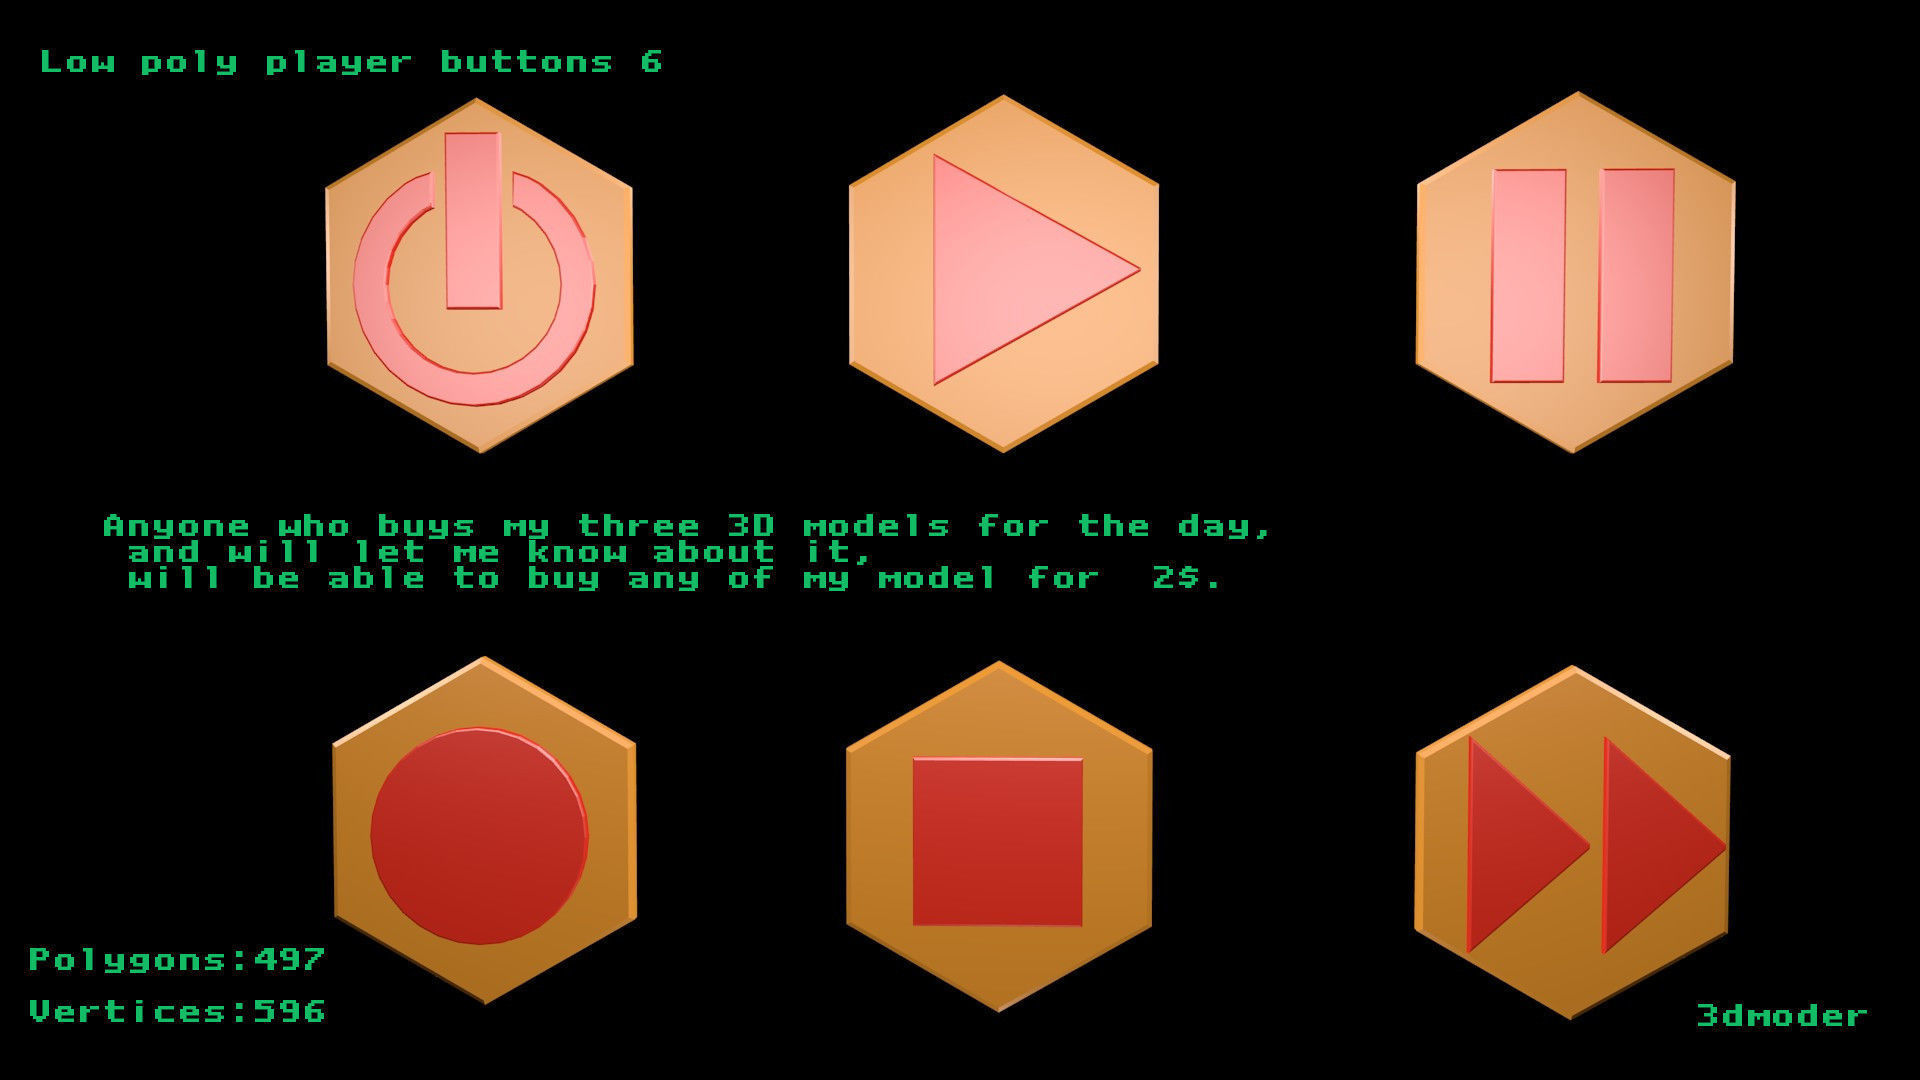 Low poly player buttons 6